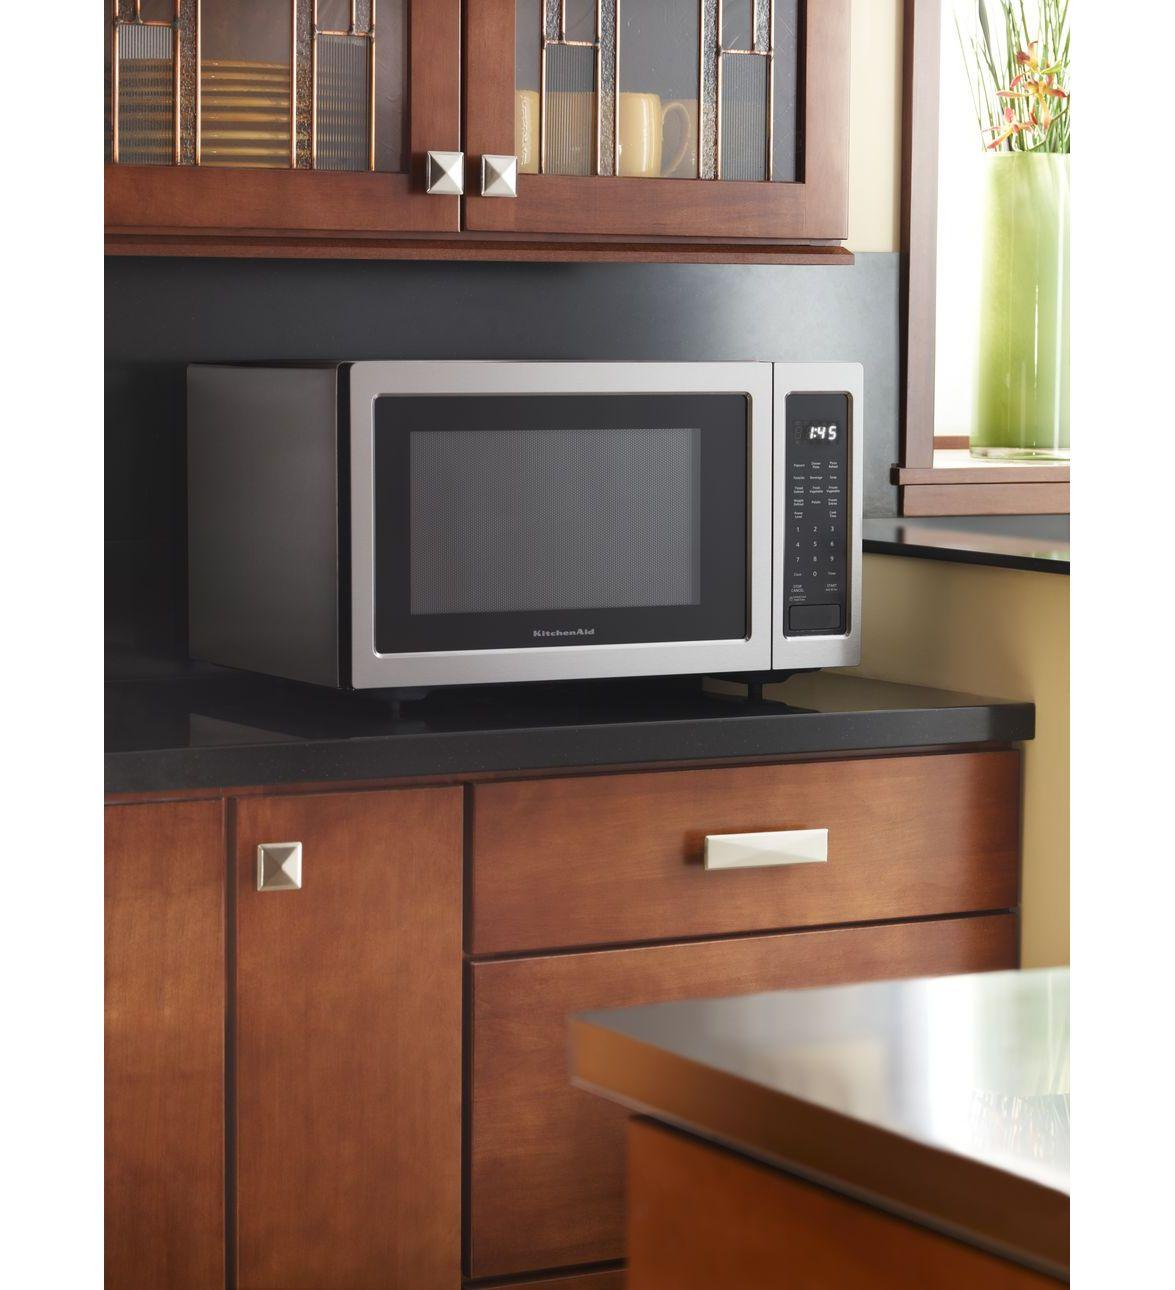 Kitchenaid Kcms2255bss 2 2 Cu Ft Countertop Microwave